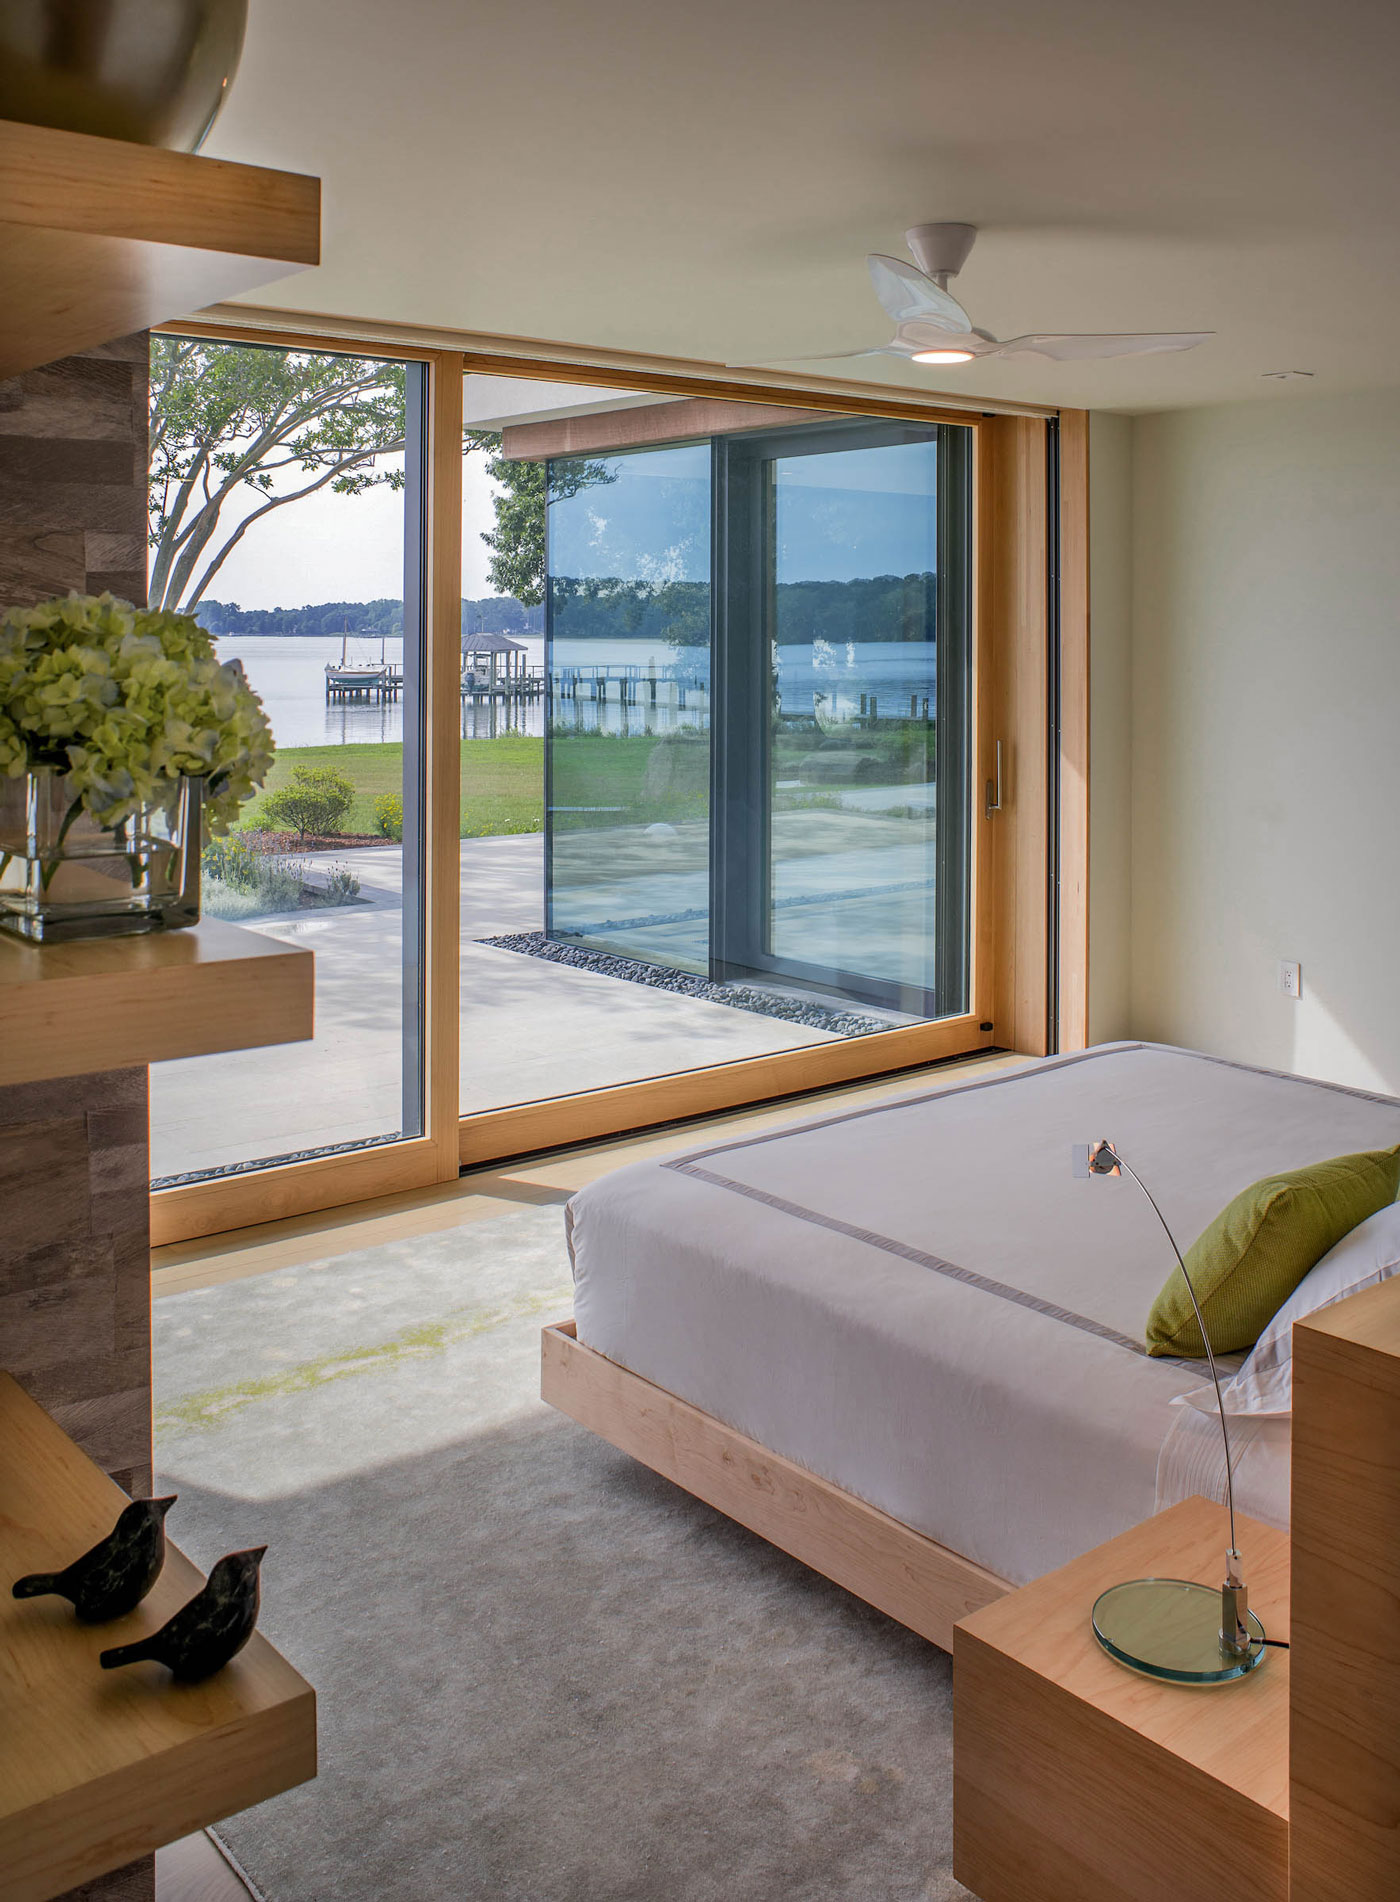 Bedroom with full length windows overlooking the water